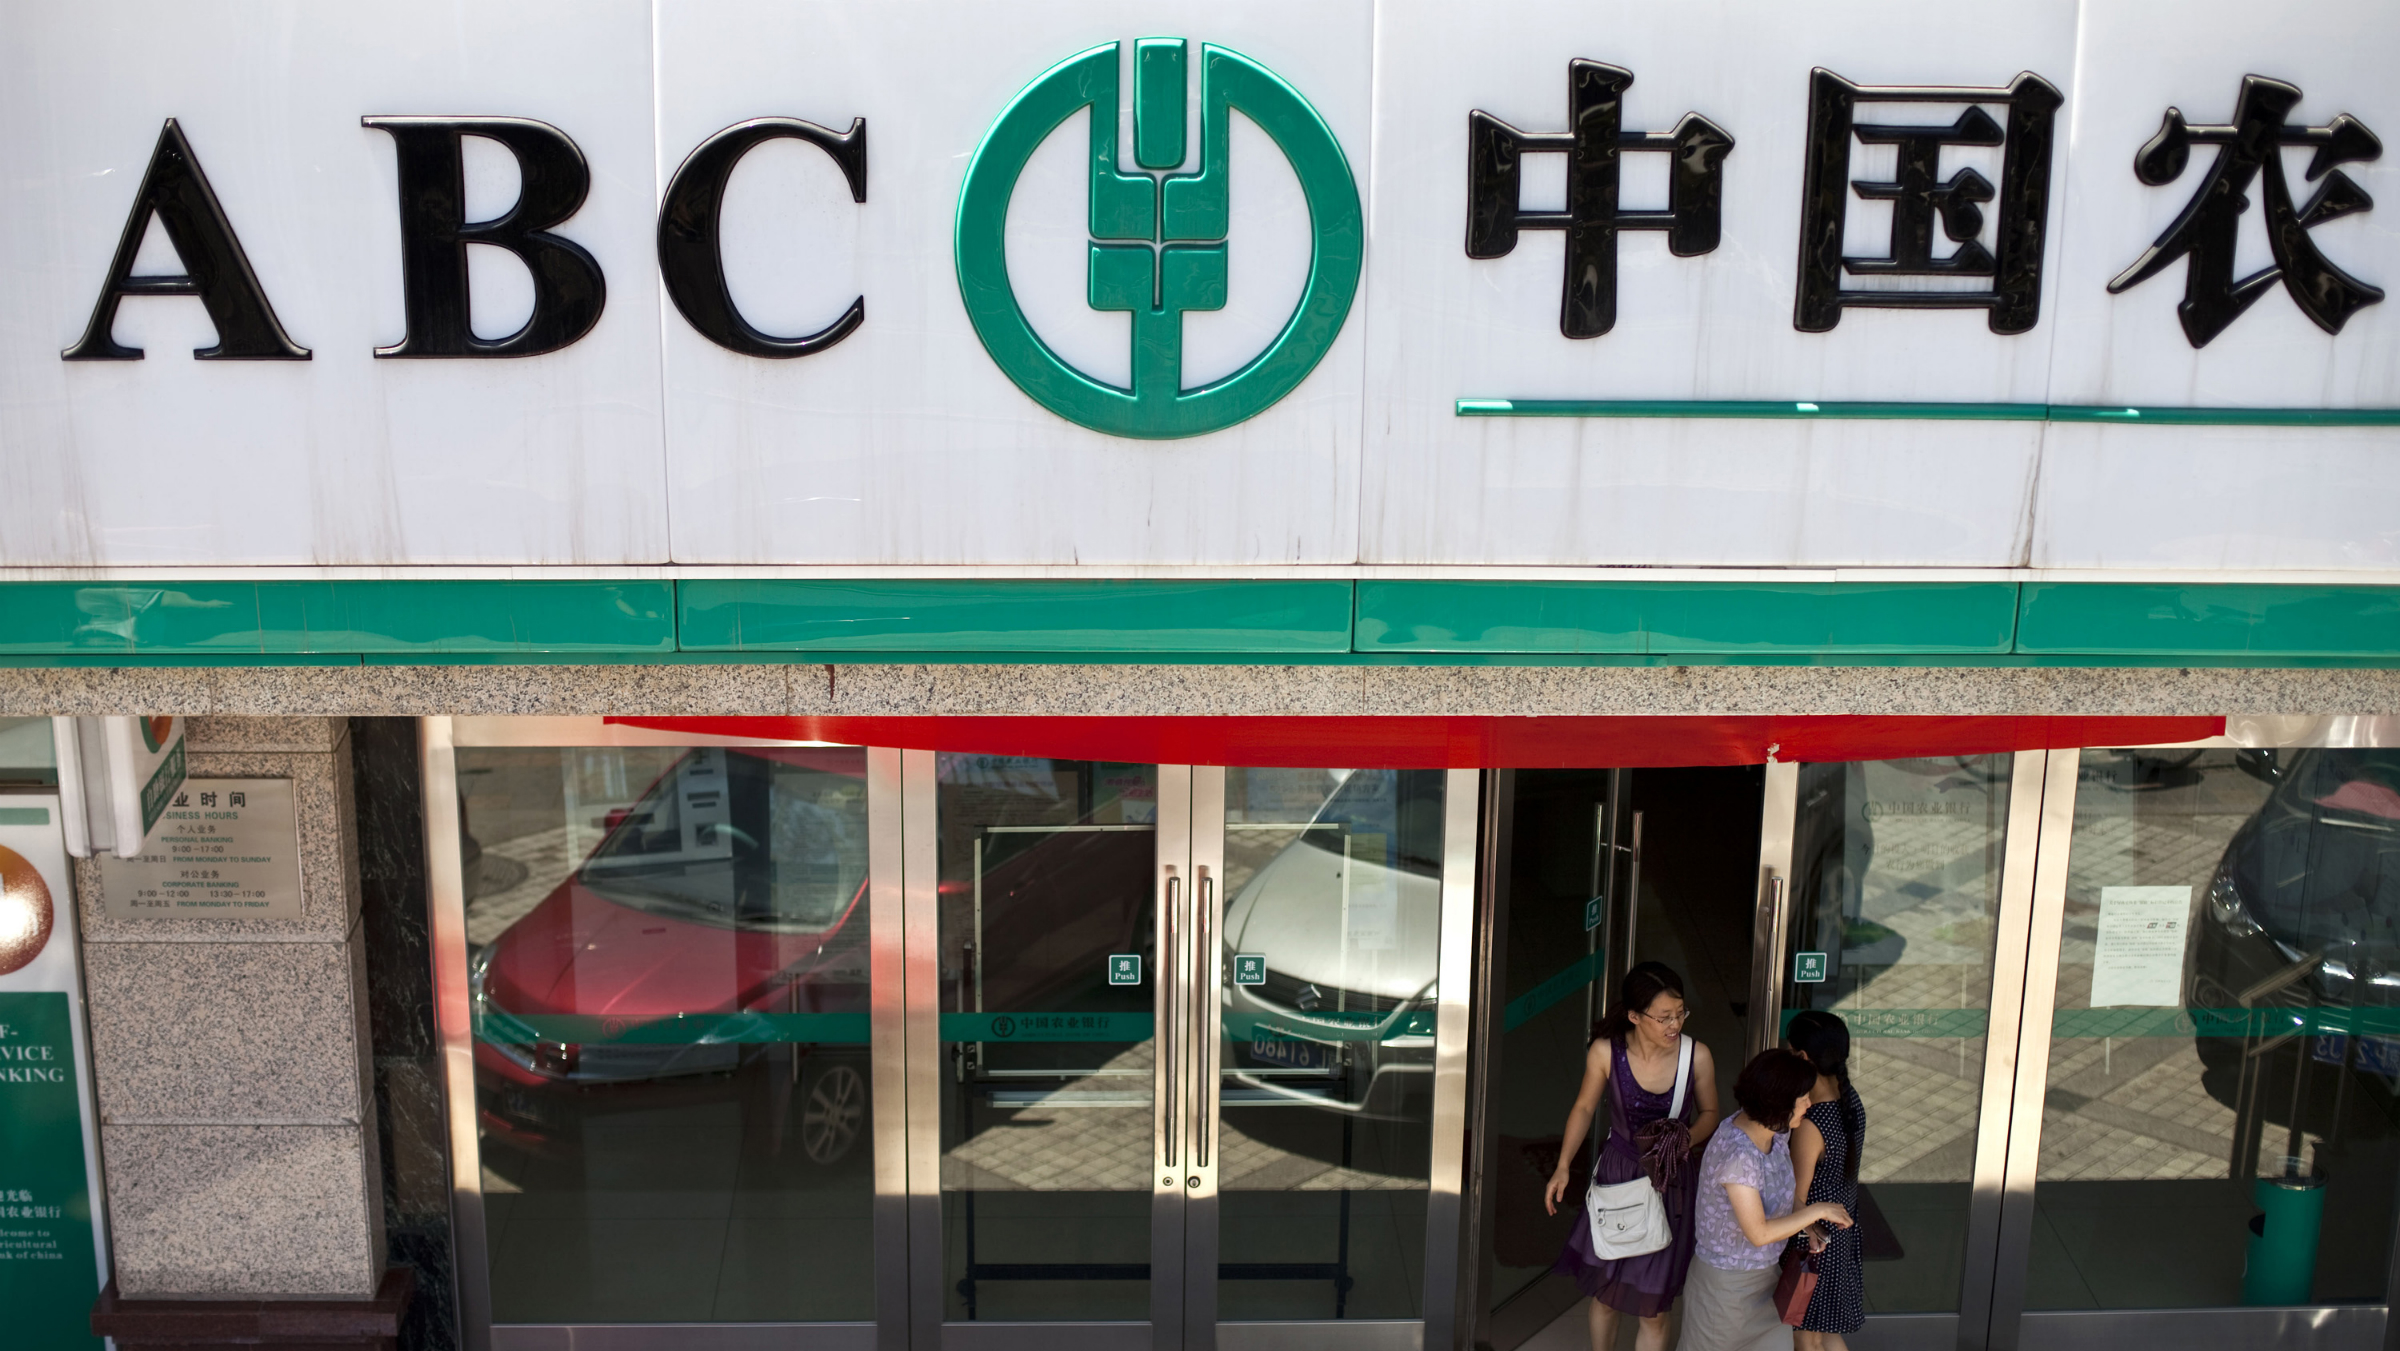 Customers walk in and out of a branch of Agricultural Bank of China in Beijing, China, Tuesday, July 6, 2010. Beijing-based Agricultural Bank, also known as ABC, expects to reap up to US$23.2 billion in the world's largest share listing. (AP Photo/Alexander F. Yuan